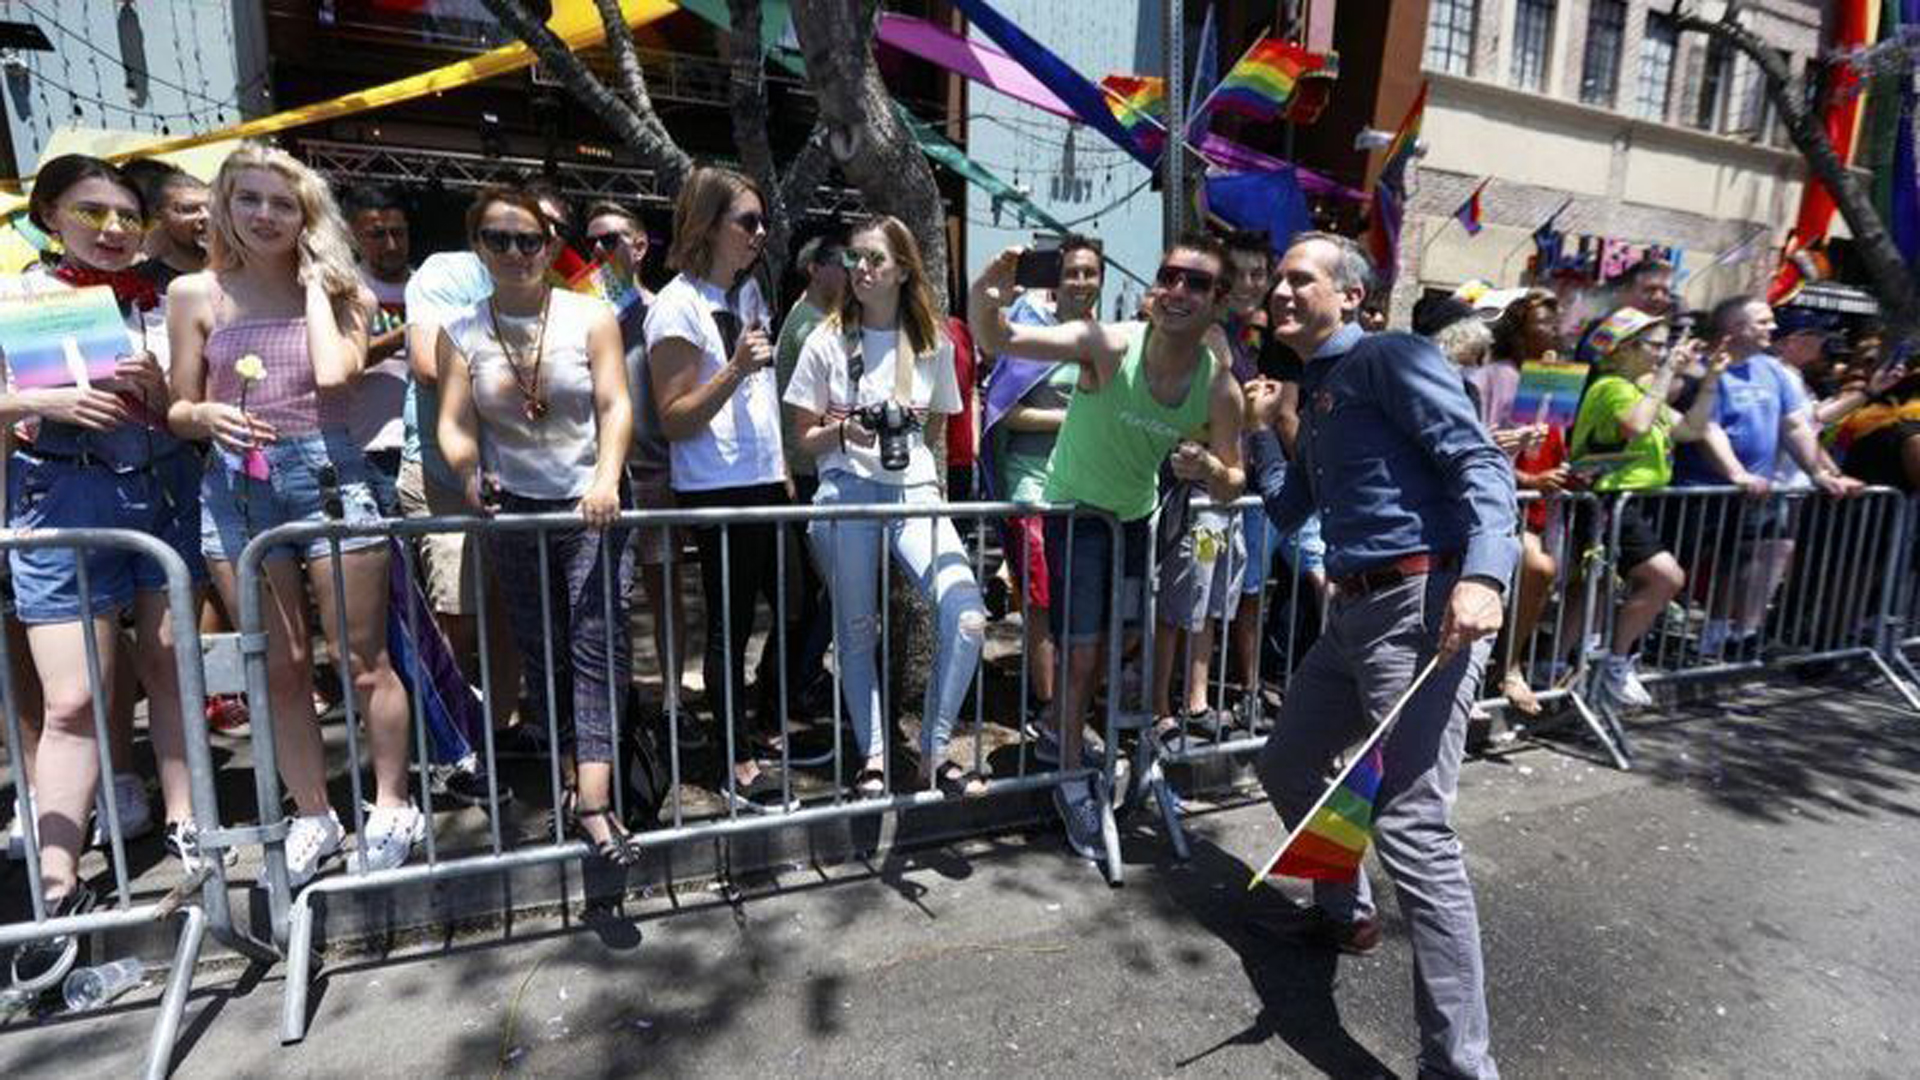 Los Angeles Mayor Eric Garcetti, right, greets the crowd at the 2018 LA Pride Parade in West Hollywood. (Credit: Francine Orr / Los Angeles Times)